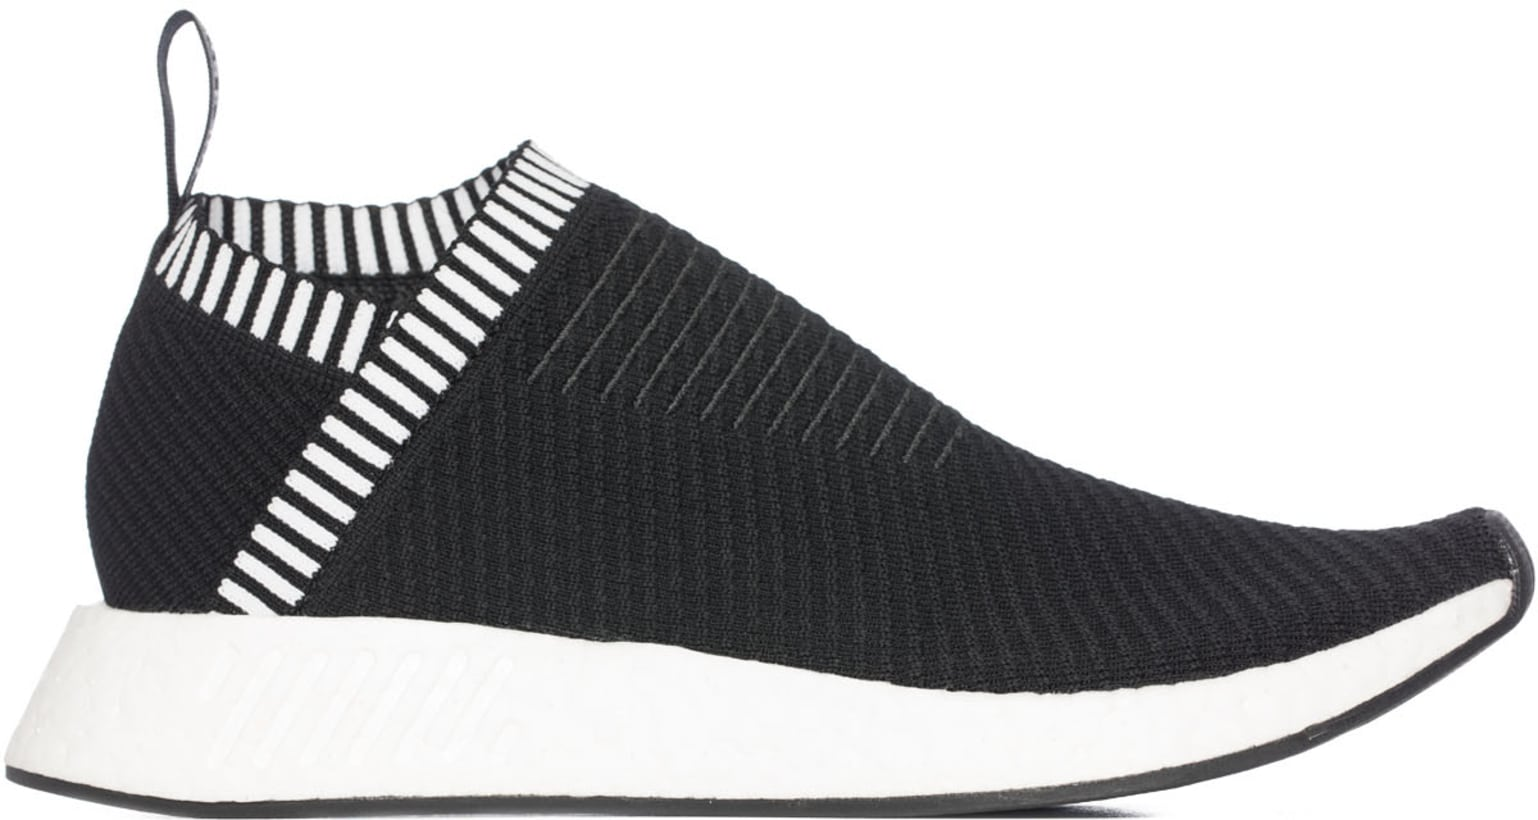 720bd225485 adidas Originals. NMD CS2 PK - Core Black Core Black Shock Pink